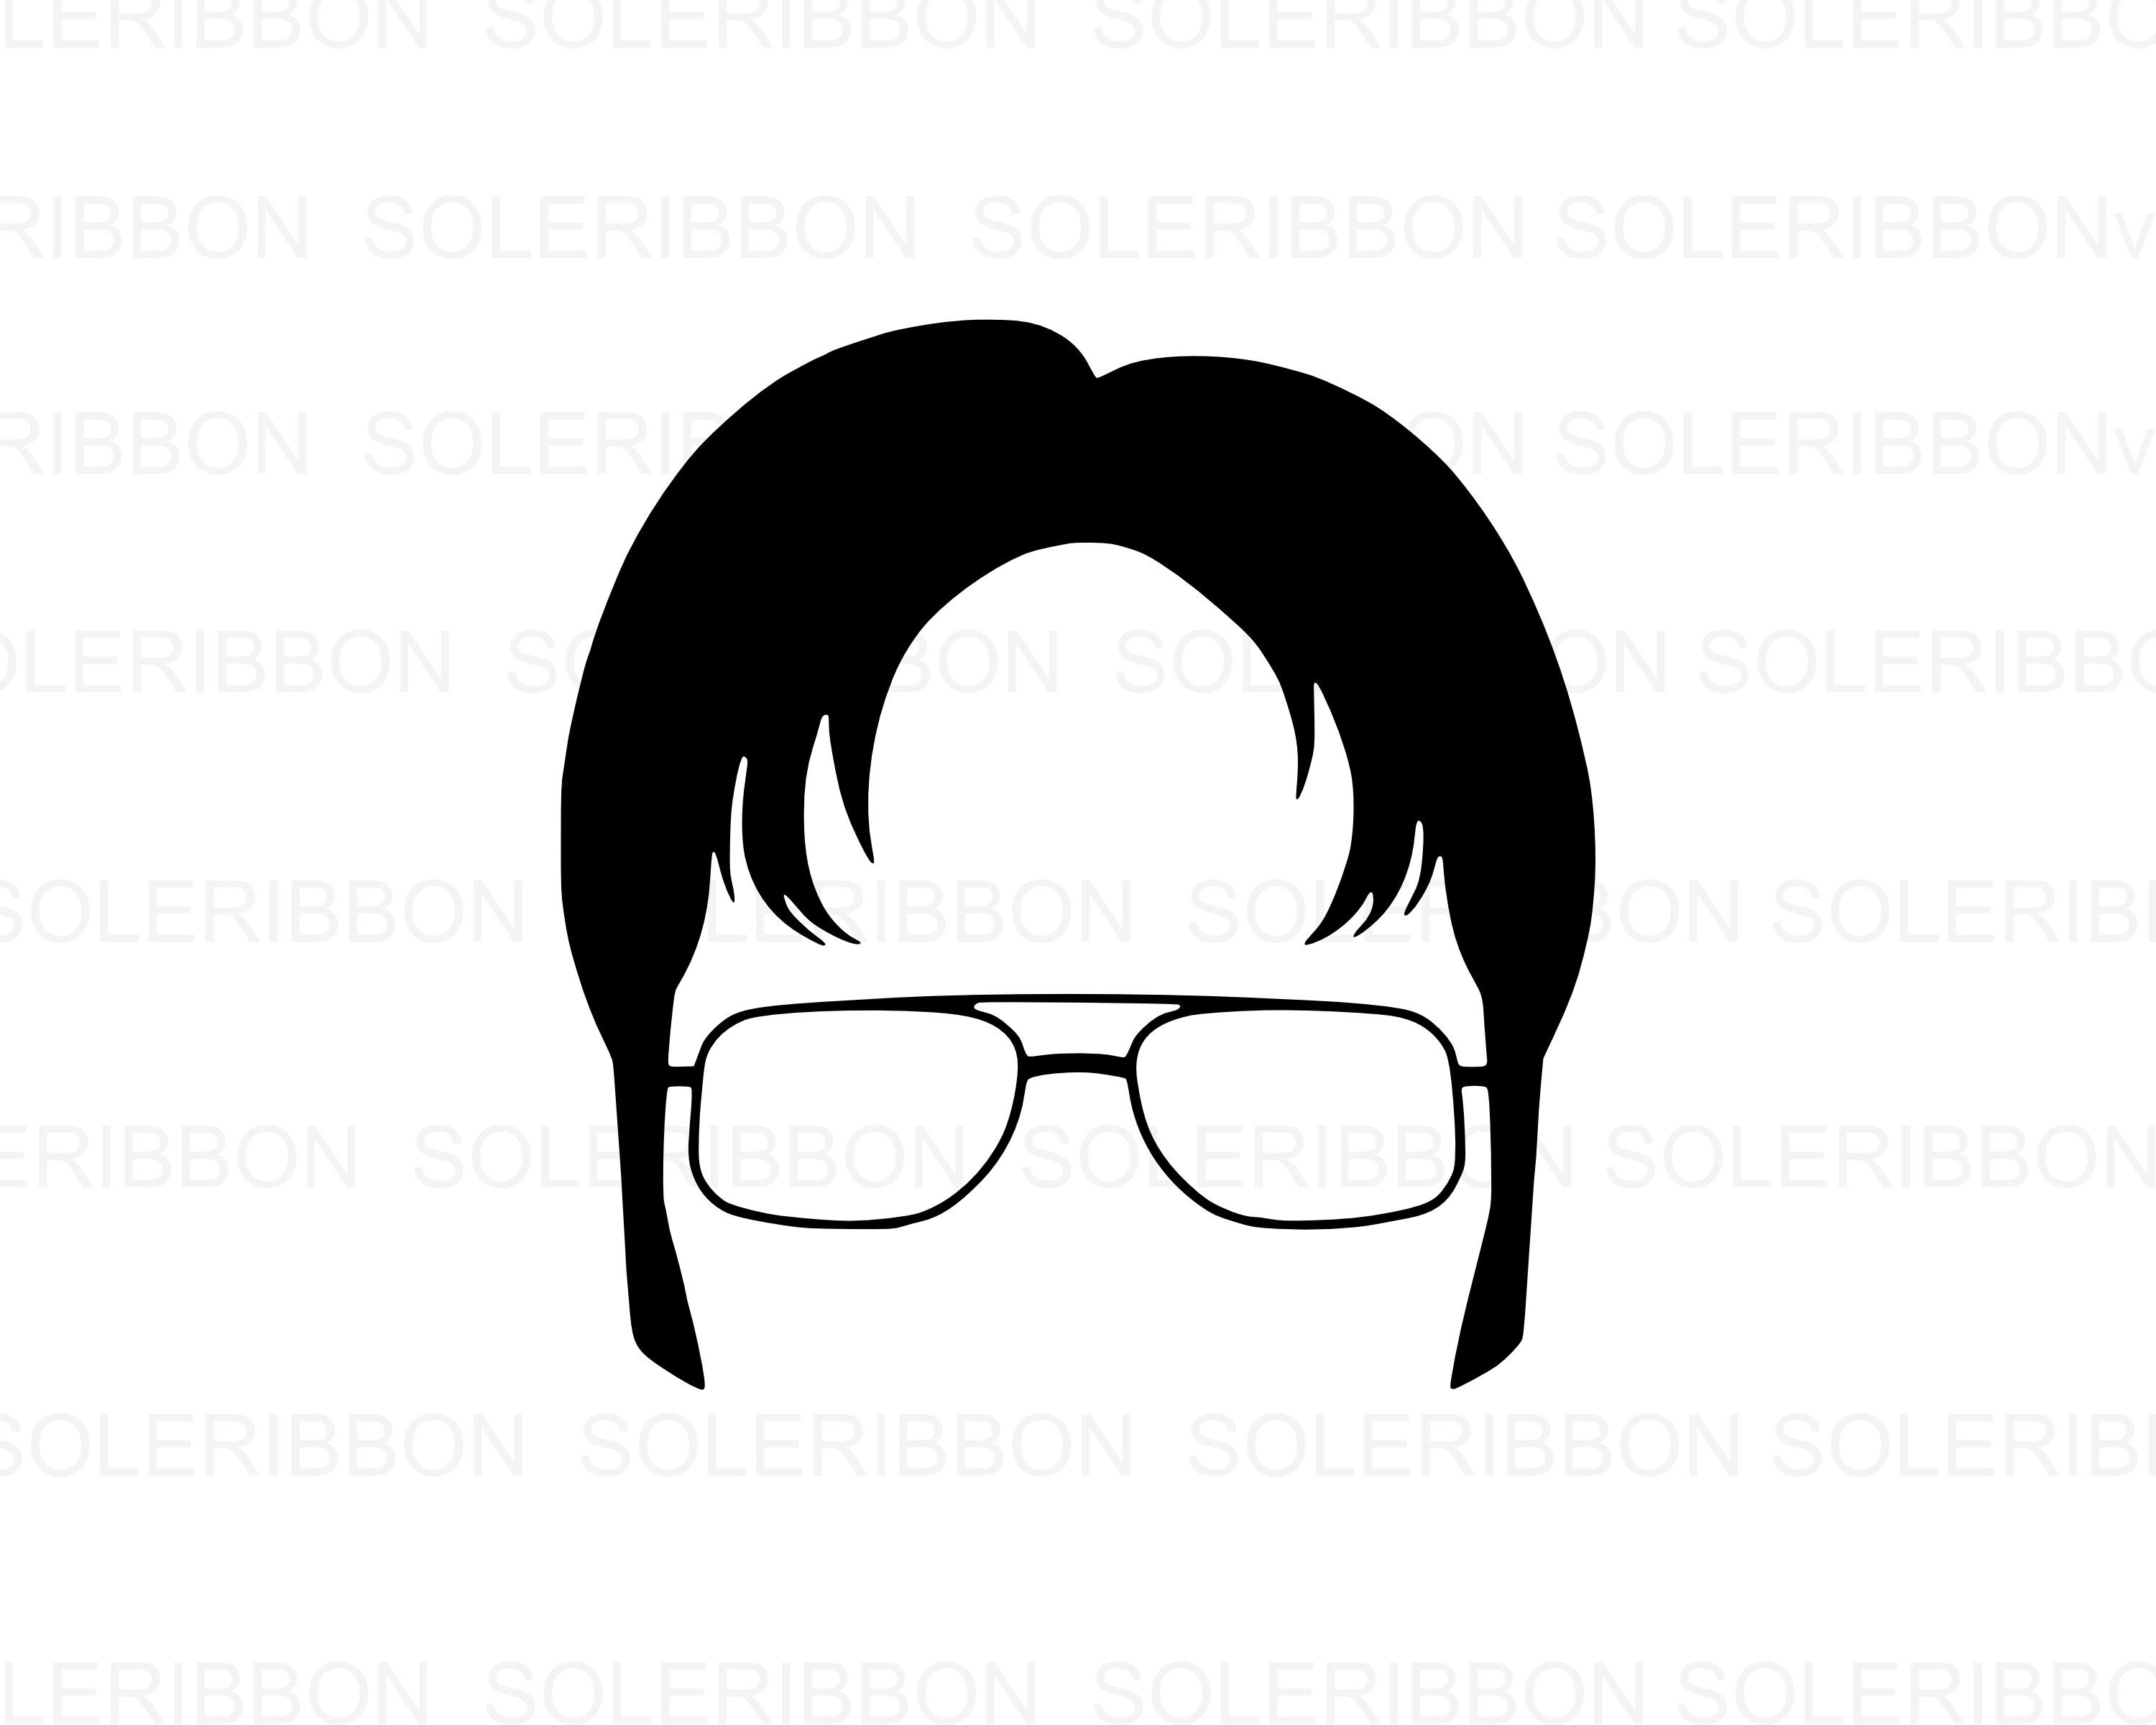 Dwight Schrute Svg The Office Svg The Office Tv Series Svg Etsy The Office Dwight Office Tv Dwight Schrute